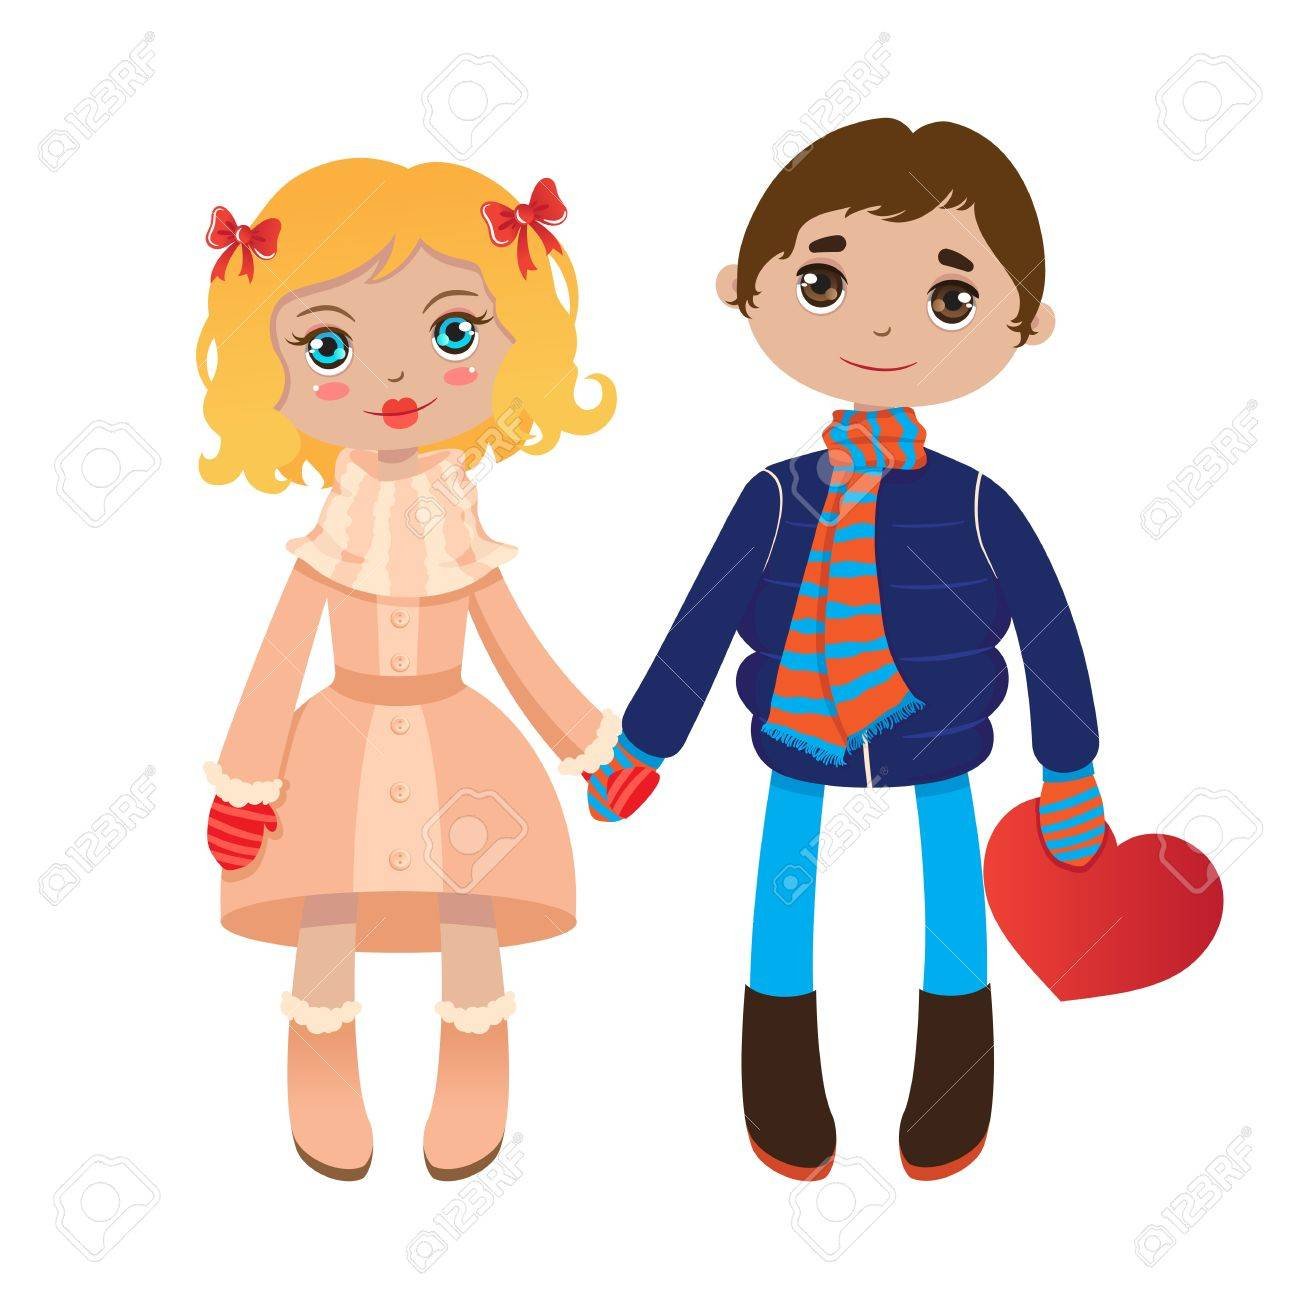 lovers boy and girl holding hands royalty free cliparts vectors rh 123rf com Holding Hands Clip Art Boy and Girld Holding Hands Clip Art Boy and Girld